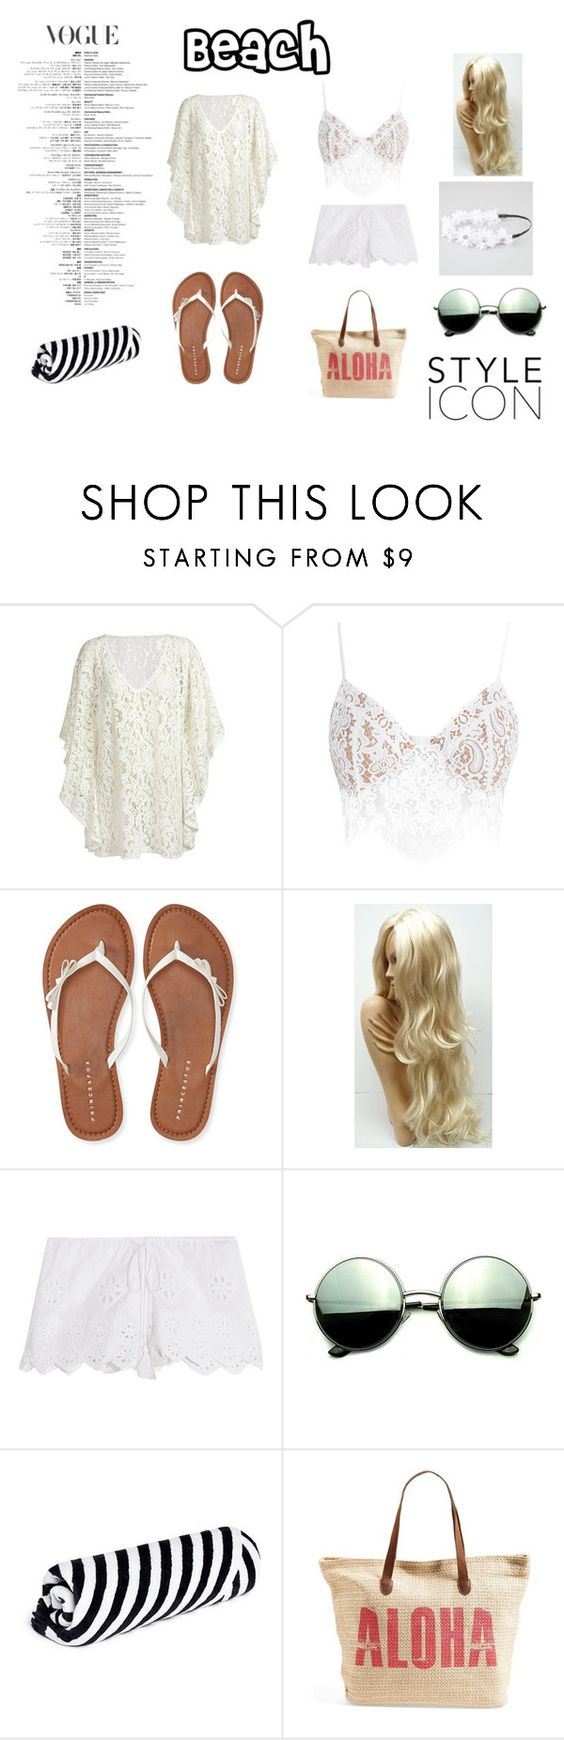 """""""#Unititled14"""" by idkwhatsay6998 ❤ liked on Polyvore featuring For Love & Lemons, Aéropostale, Miguelina, Revo, The Beach People, Rip Curl and Full Tilt"""